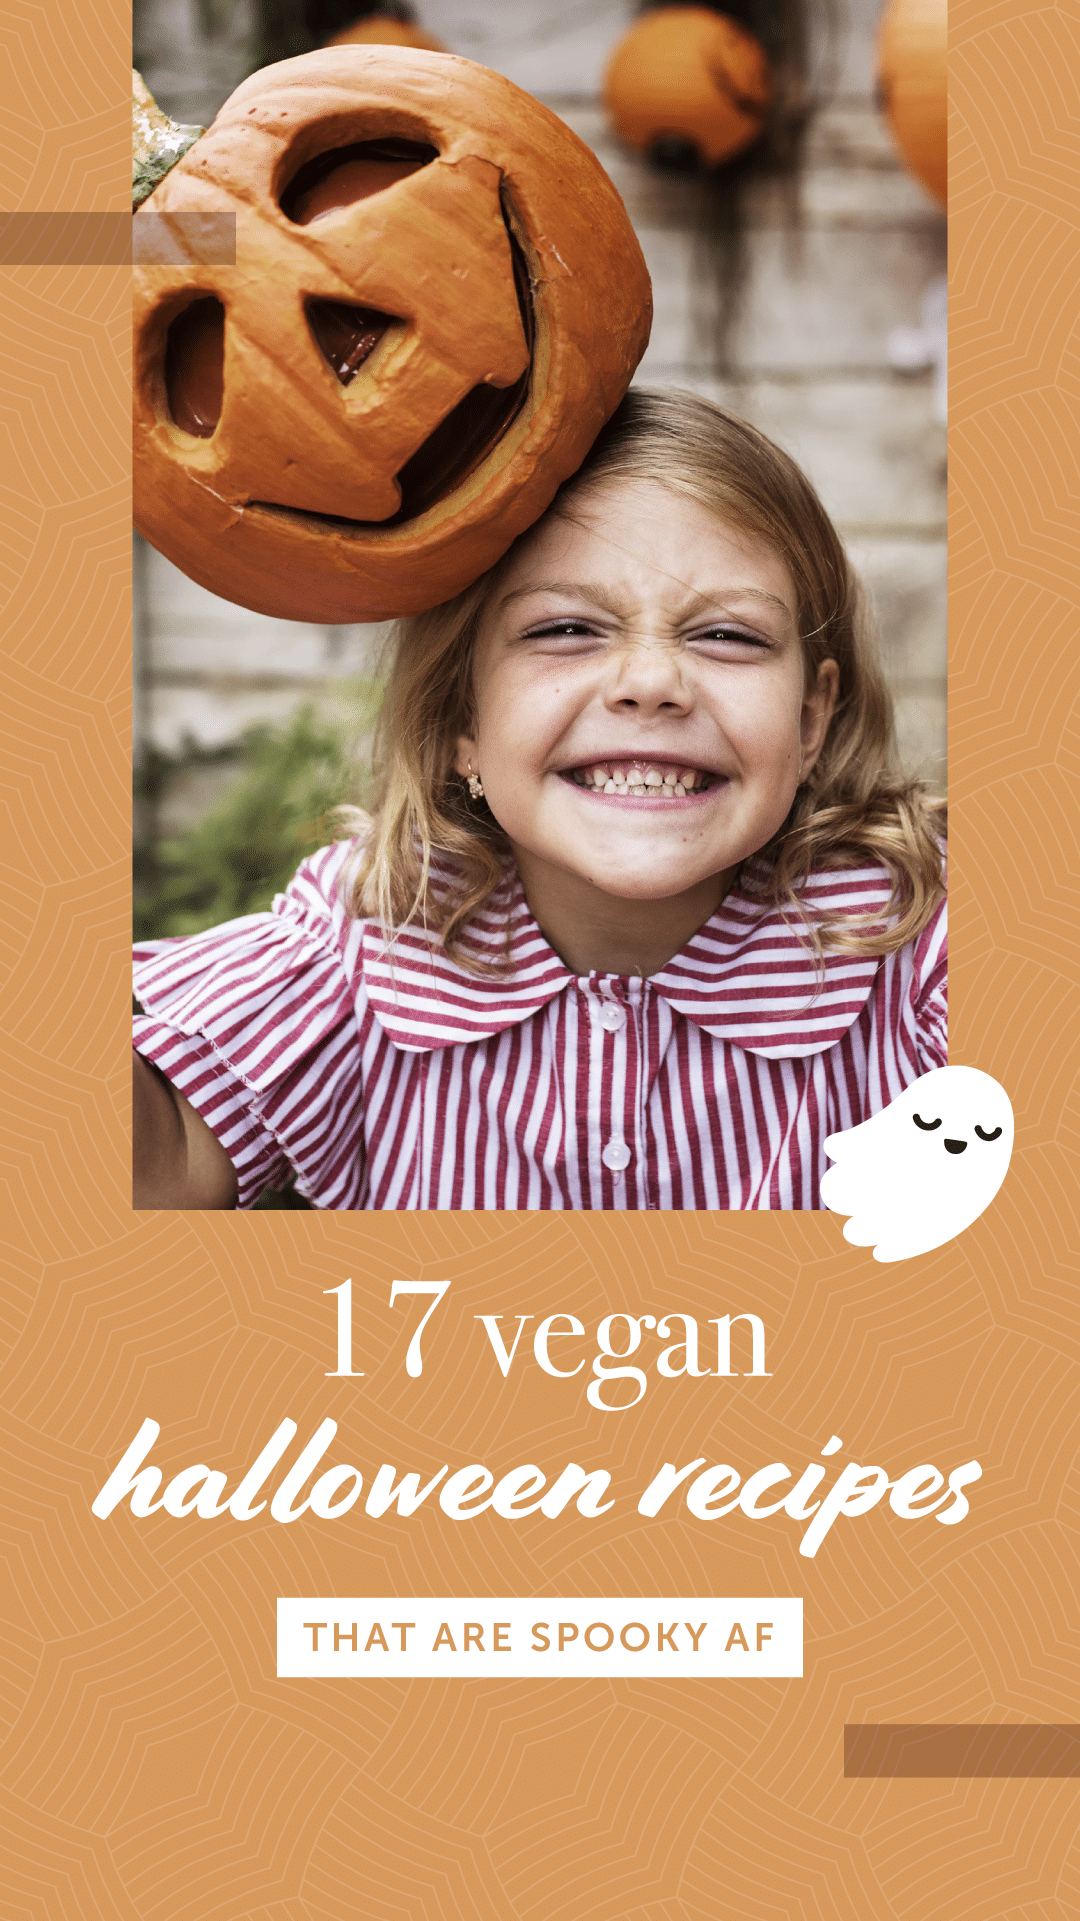 17 Vegan Halloween Recipes That Are Spooky AF